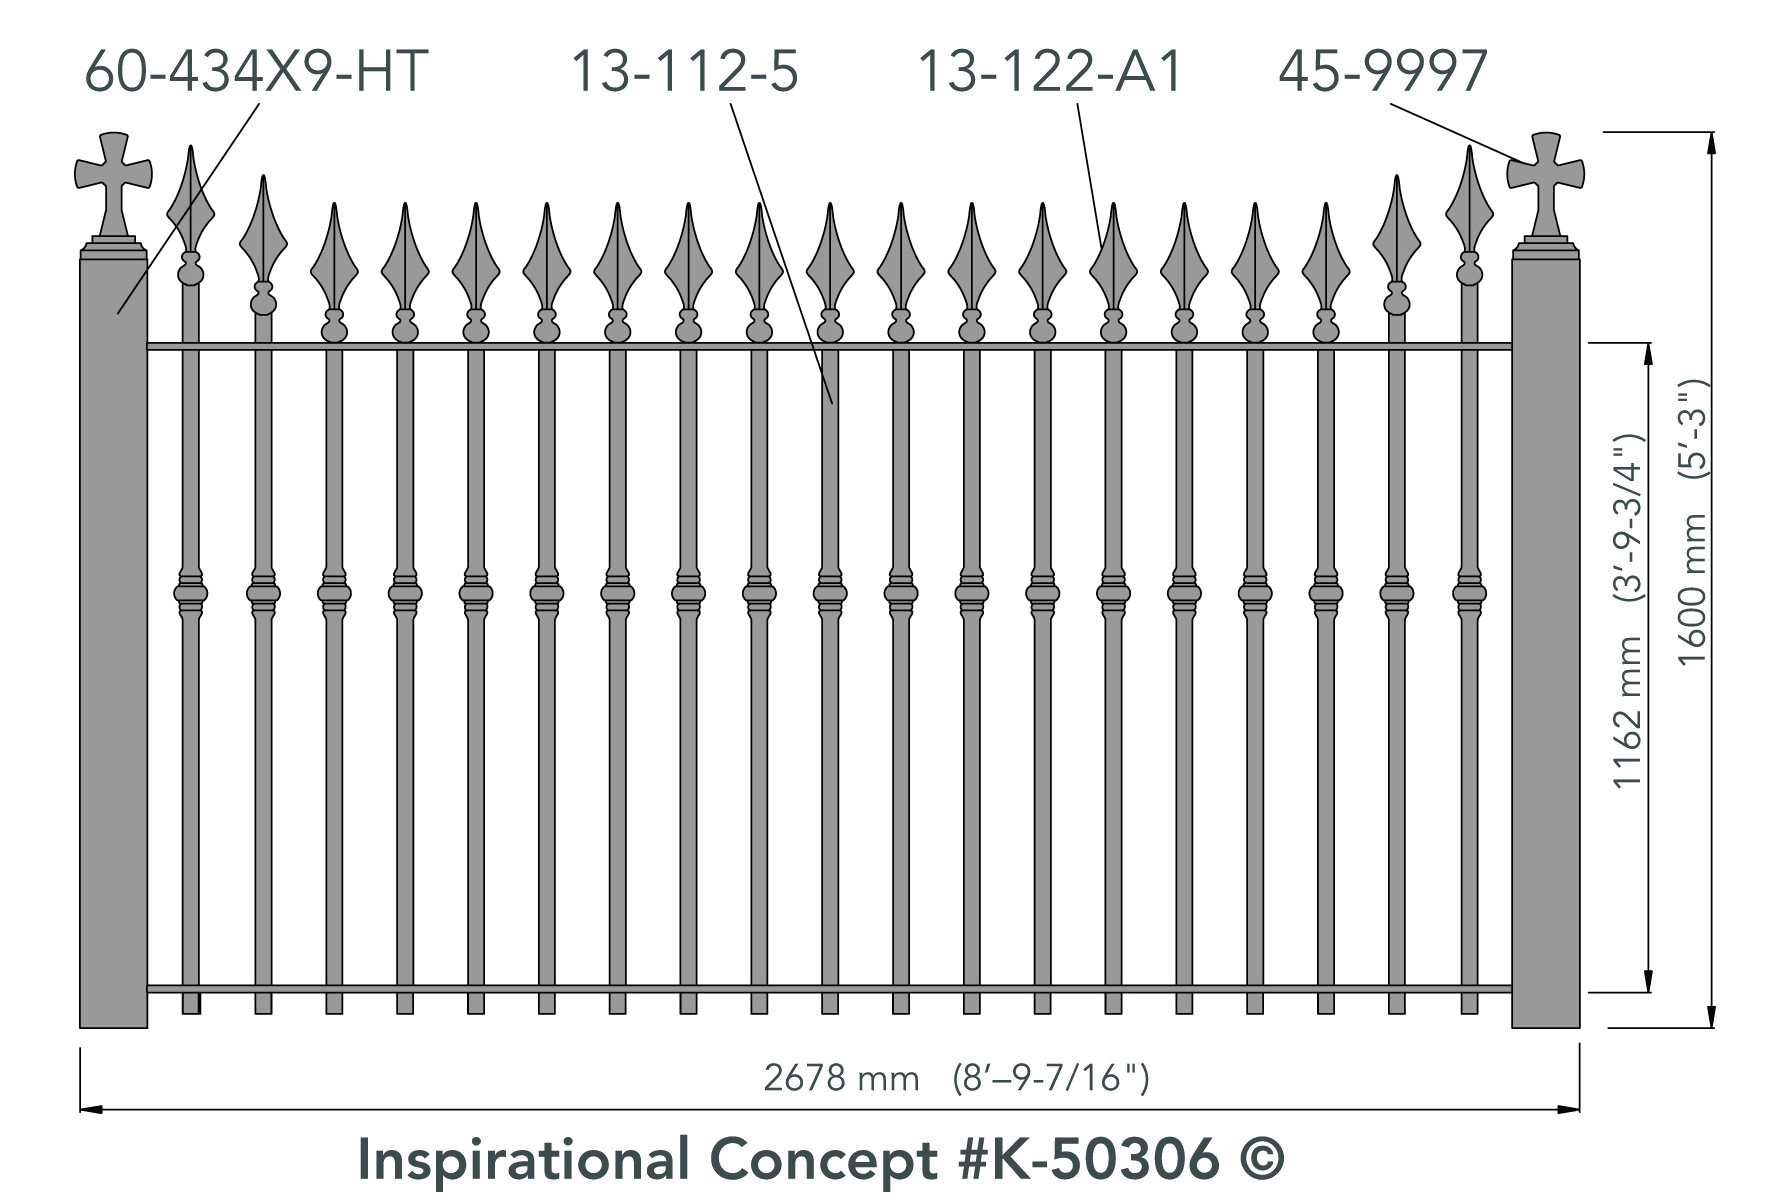 Adding Fence Toppers Gives A Fence Character And Adds Overall Beauty See What You Can Come Up With At Kingmetals Com Concept Design Design Concept